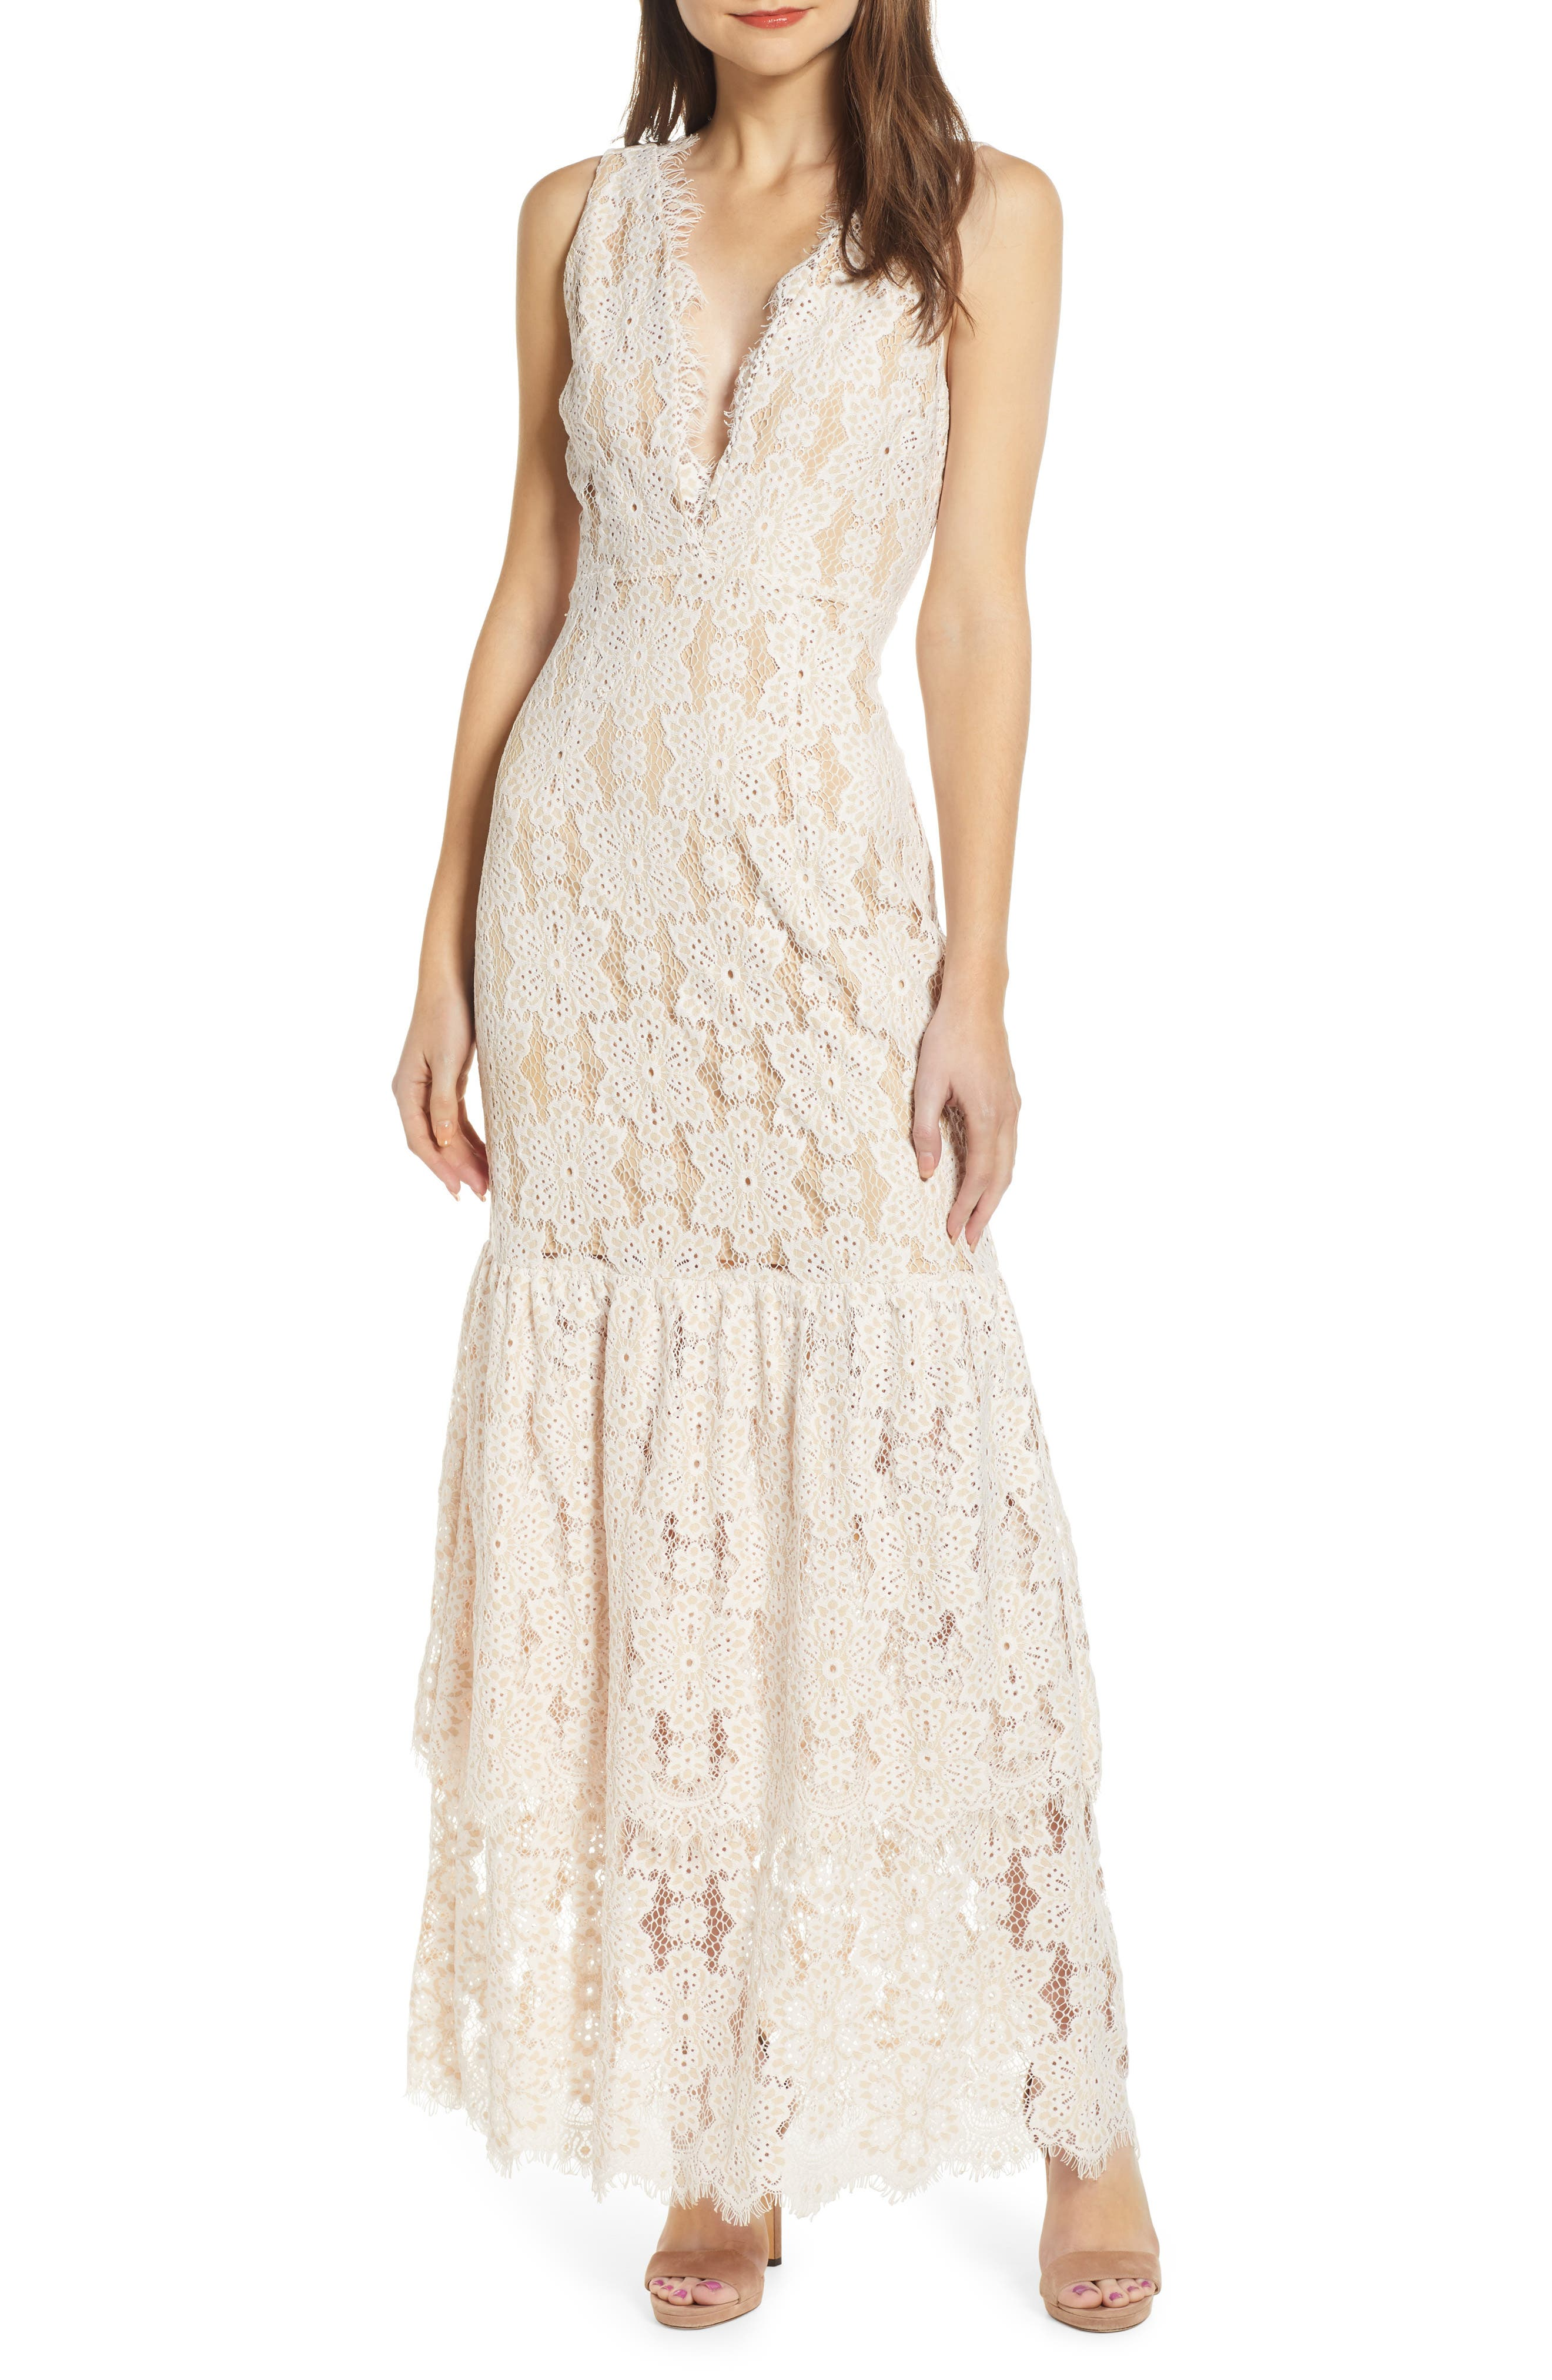 Wayf Meander Tiered Lace Cotton Blend Maxi Dress, Ivory